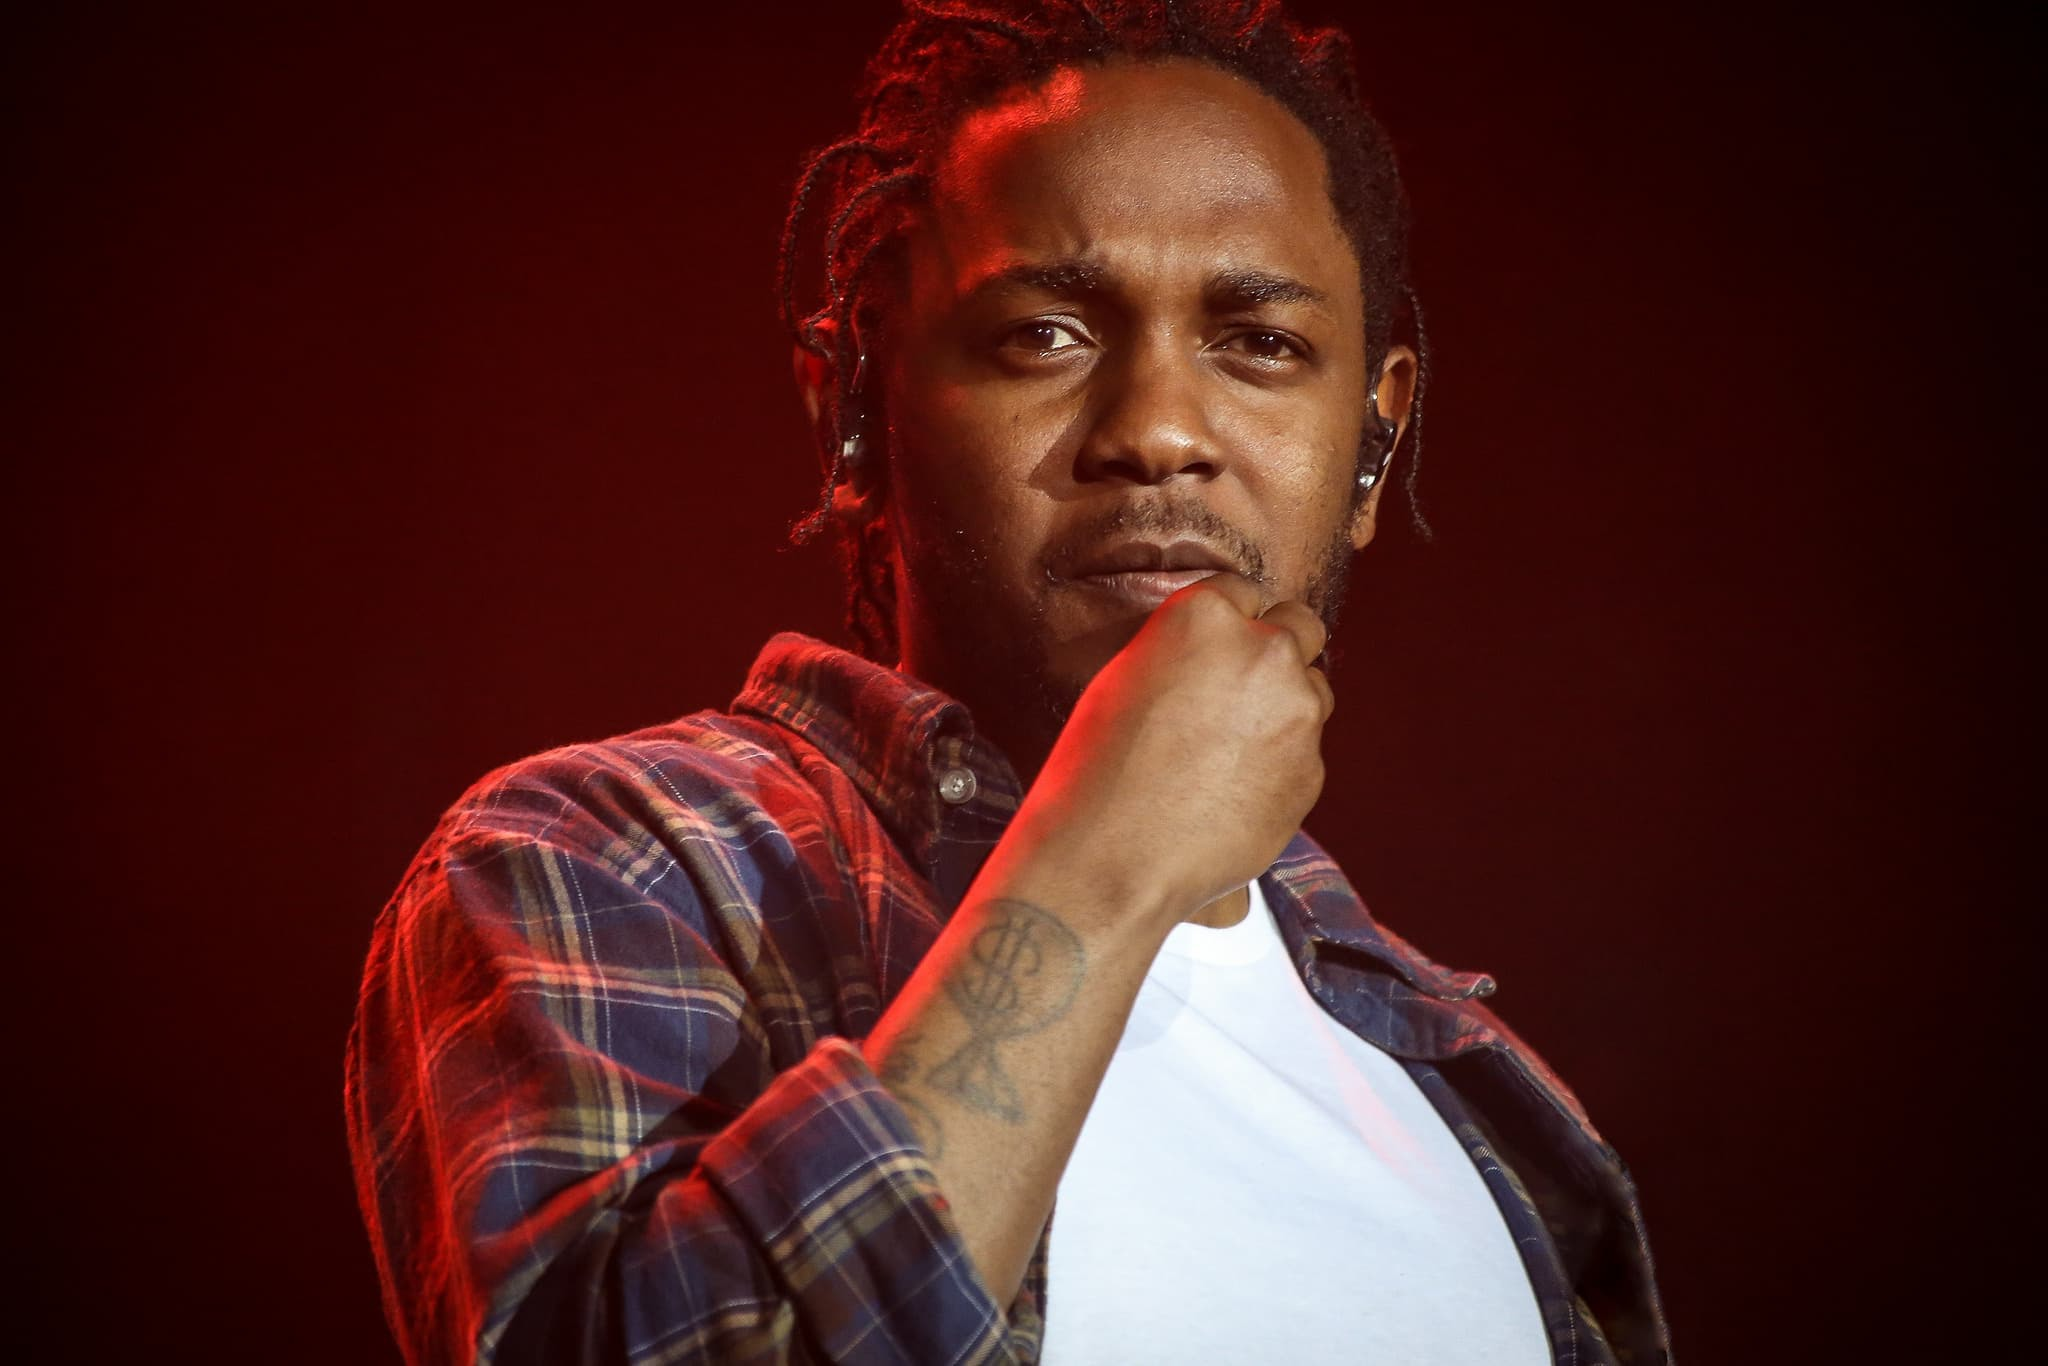 Kendrick Lamar Wallpapers Images Photos Pictures Backgrounds